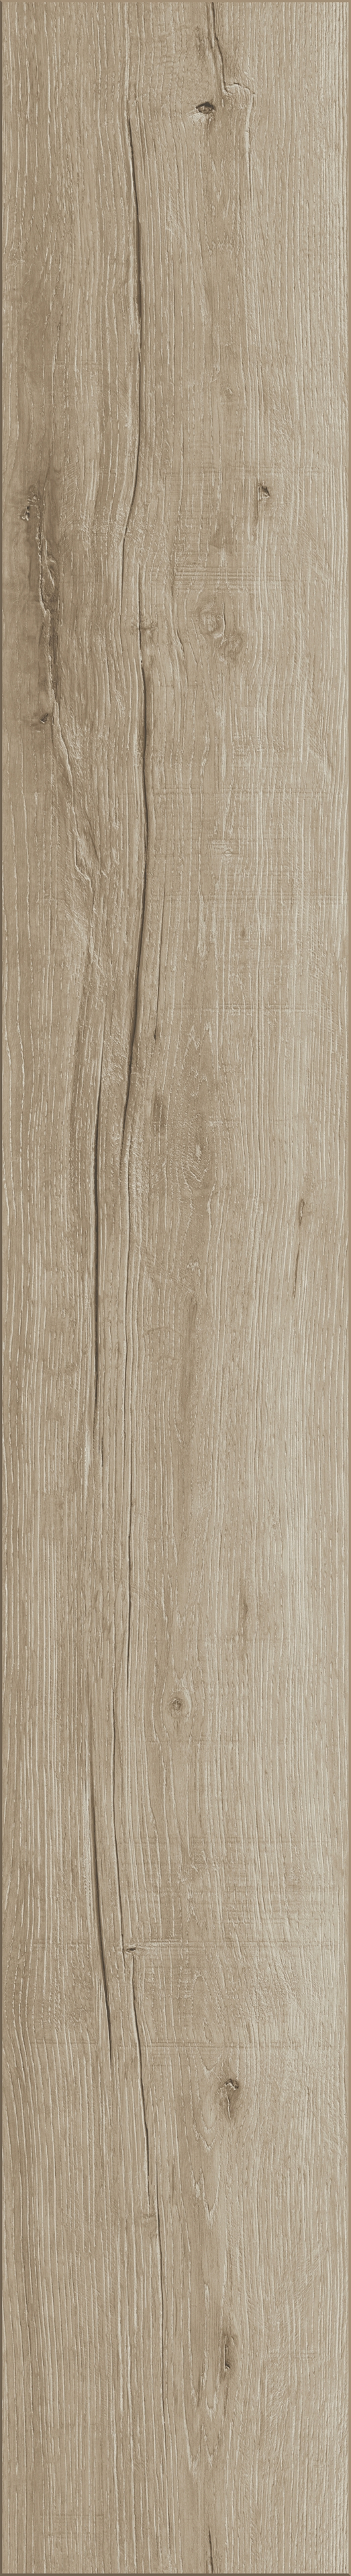 Kronotex robusto rip oak nature d 3180 from kronotex for Robusto laminate flooring